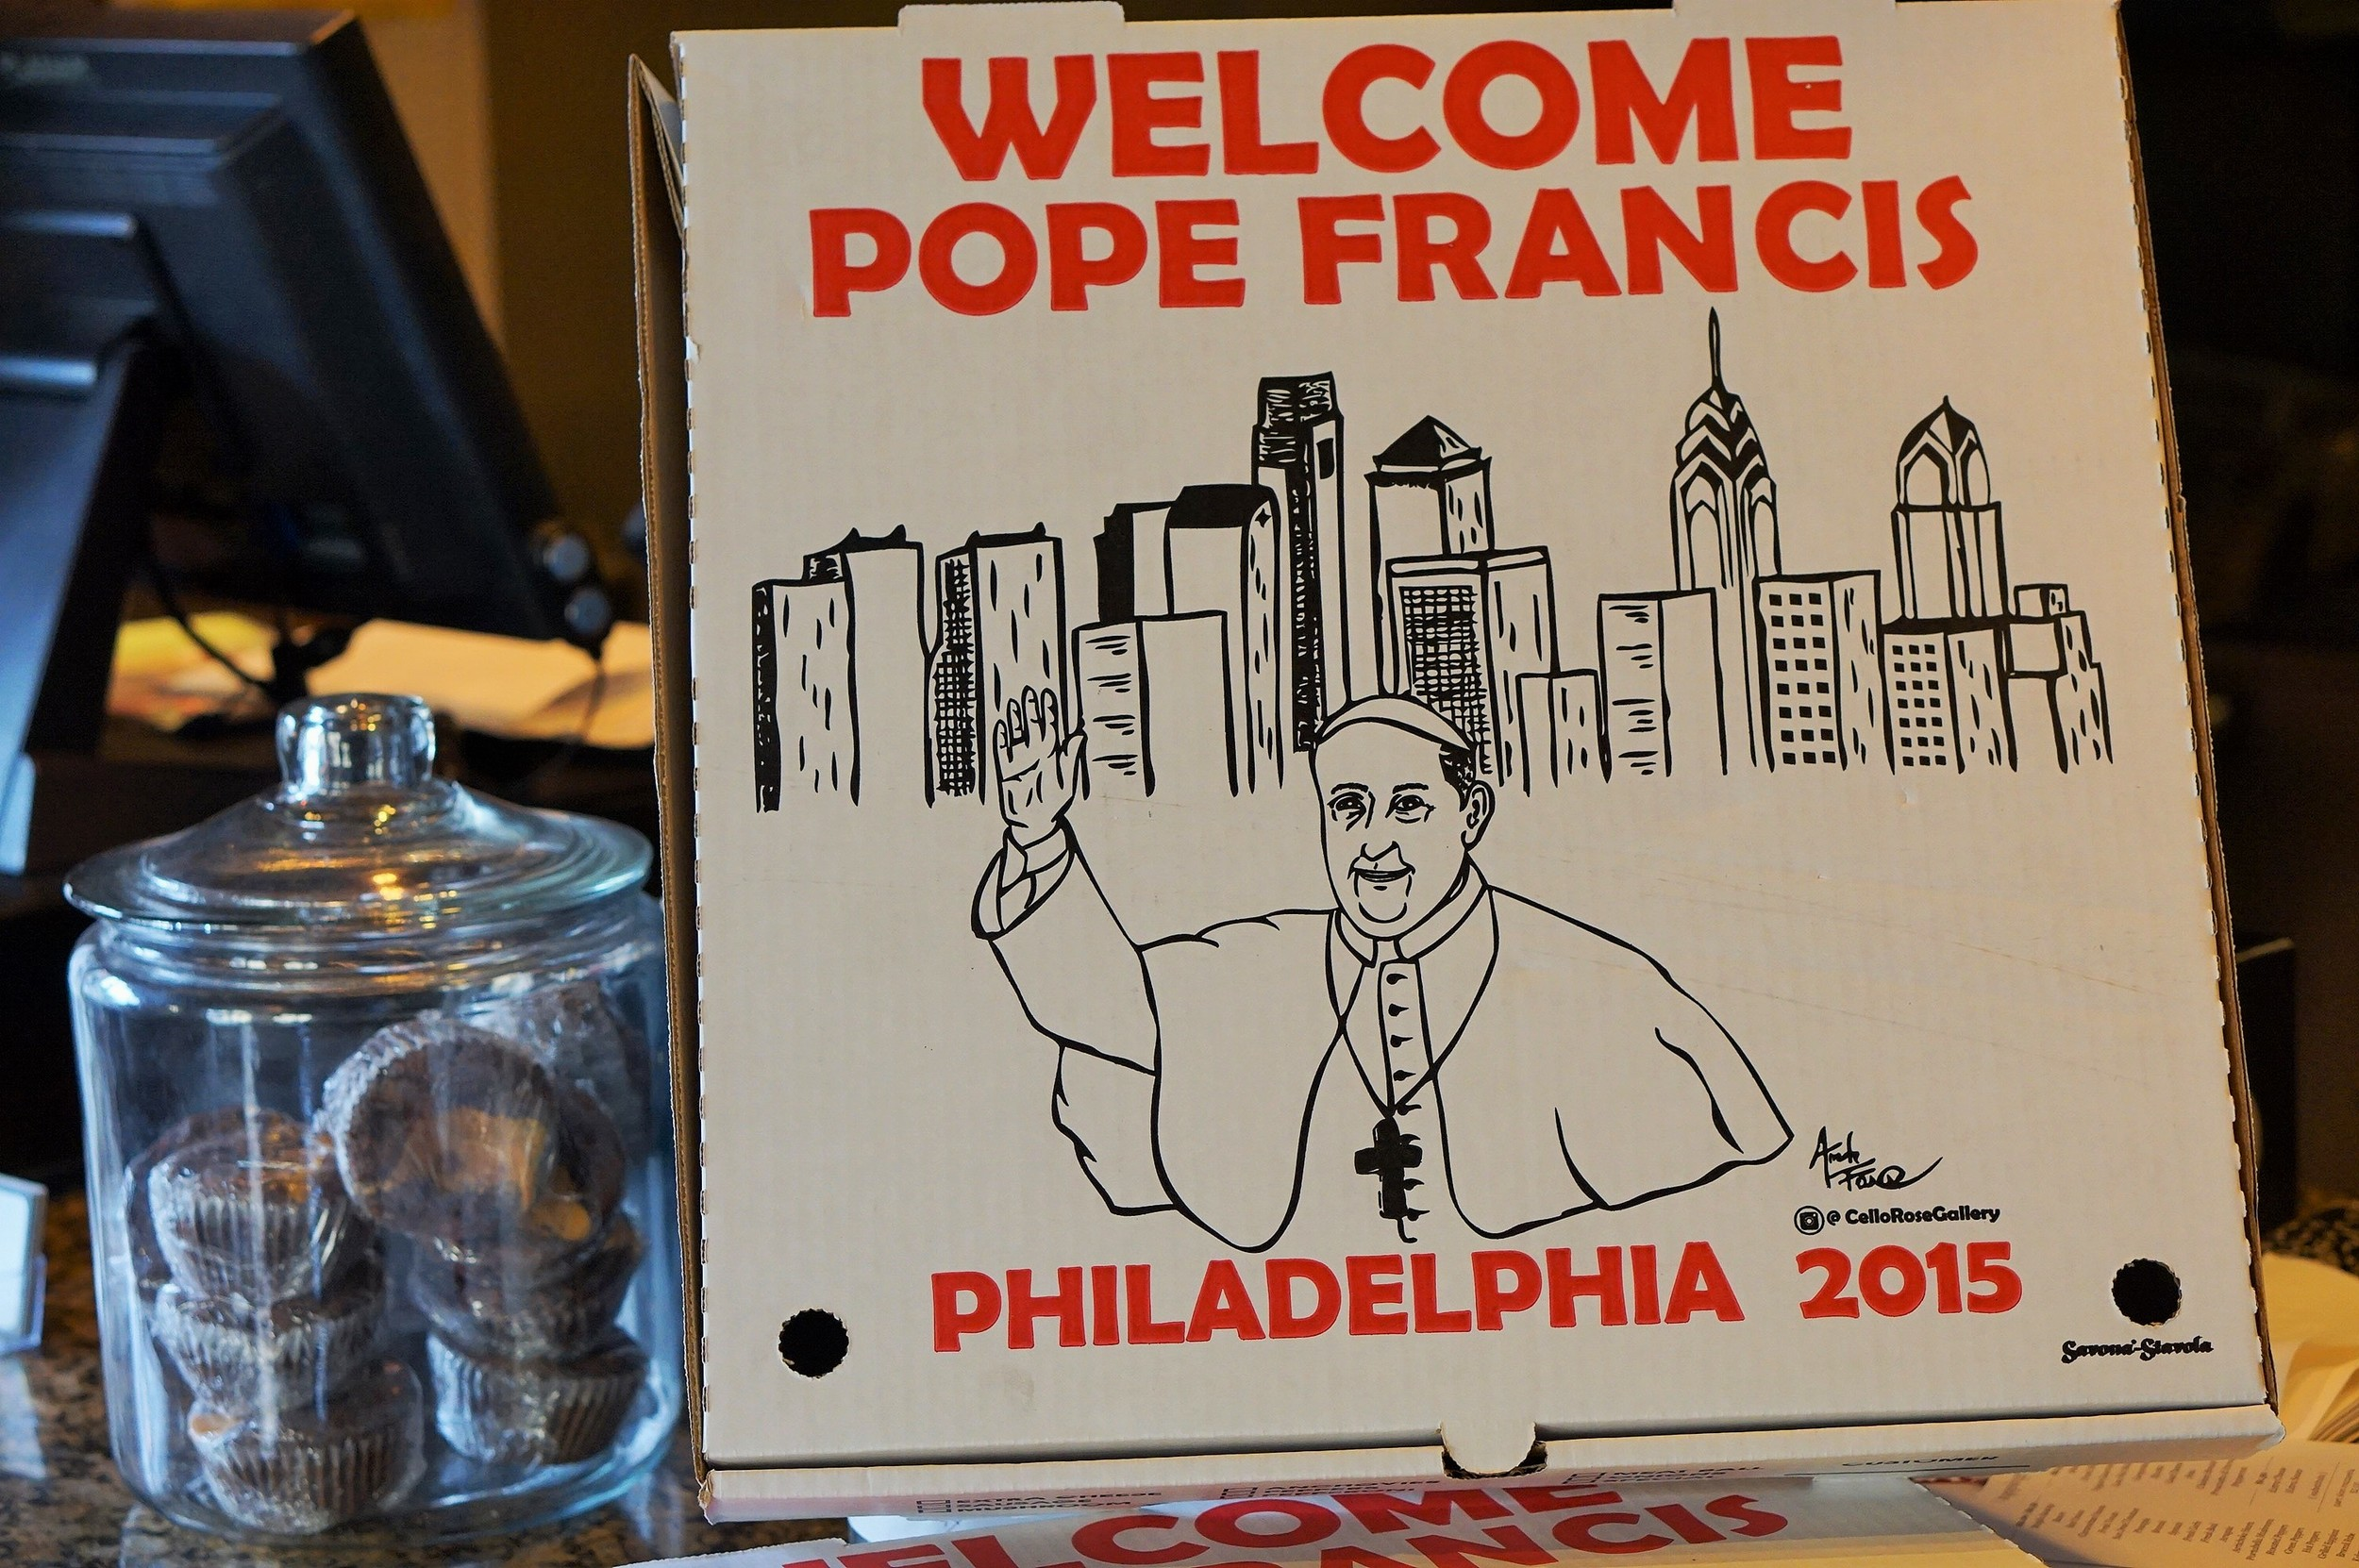 Openinphilly, restaurant, philadelphia, pope francis, openinphilly, popeinphilly, aversapr, slice, punk burger, marlo and jason dilks, east passyunk, south philly